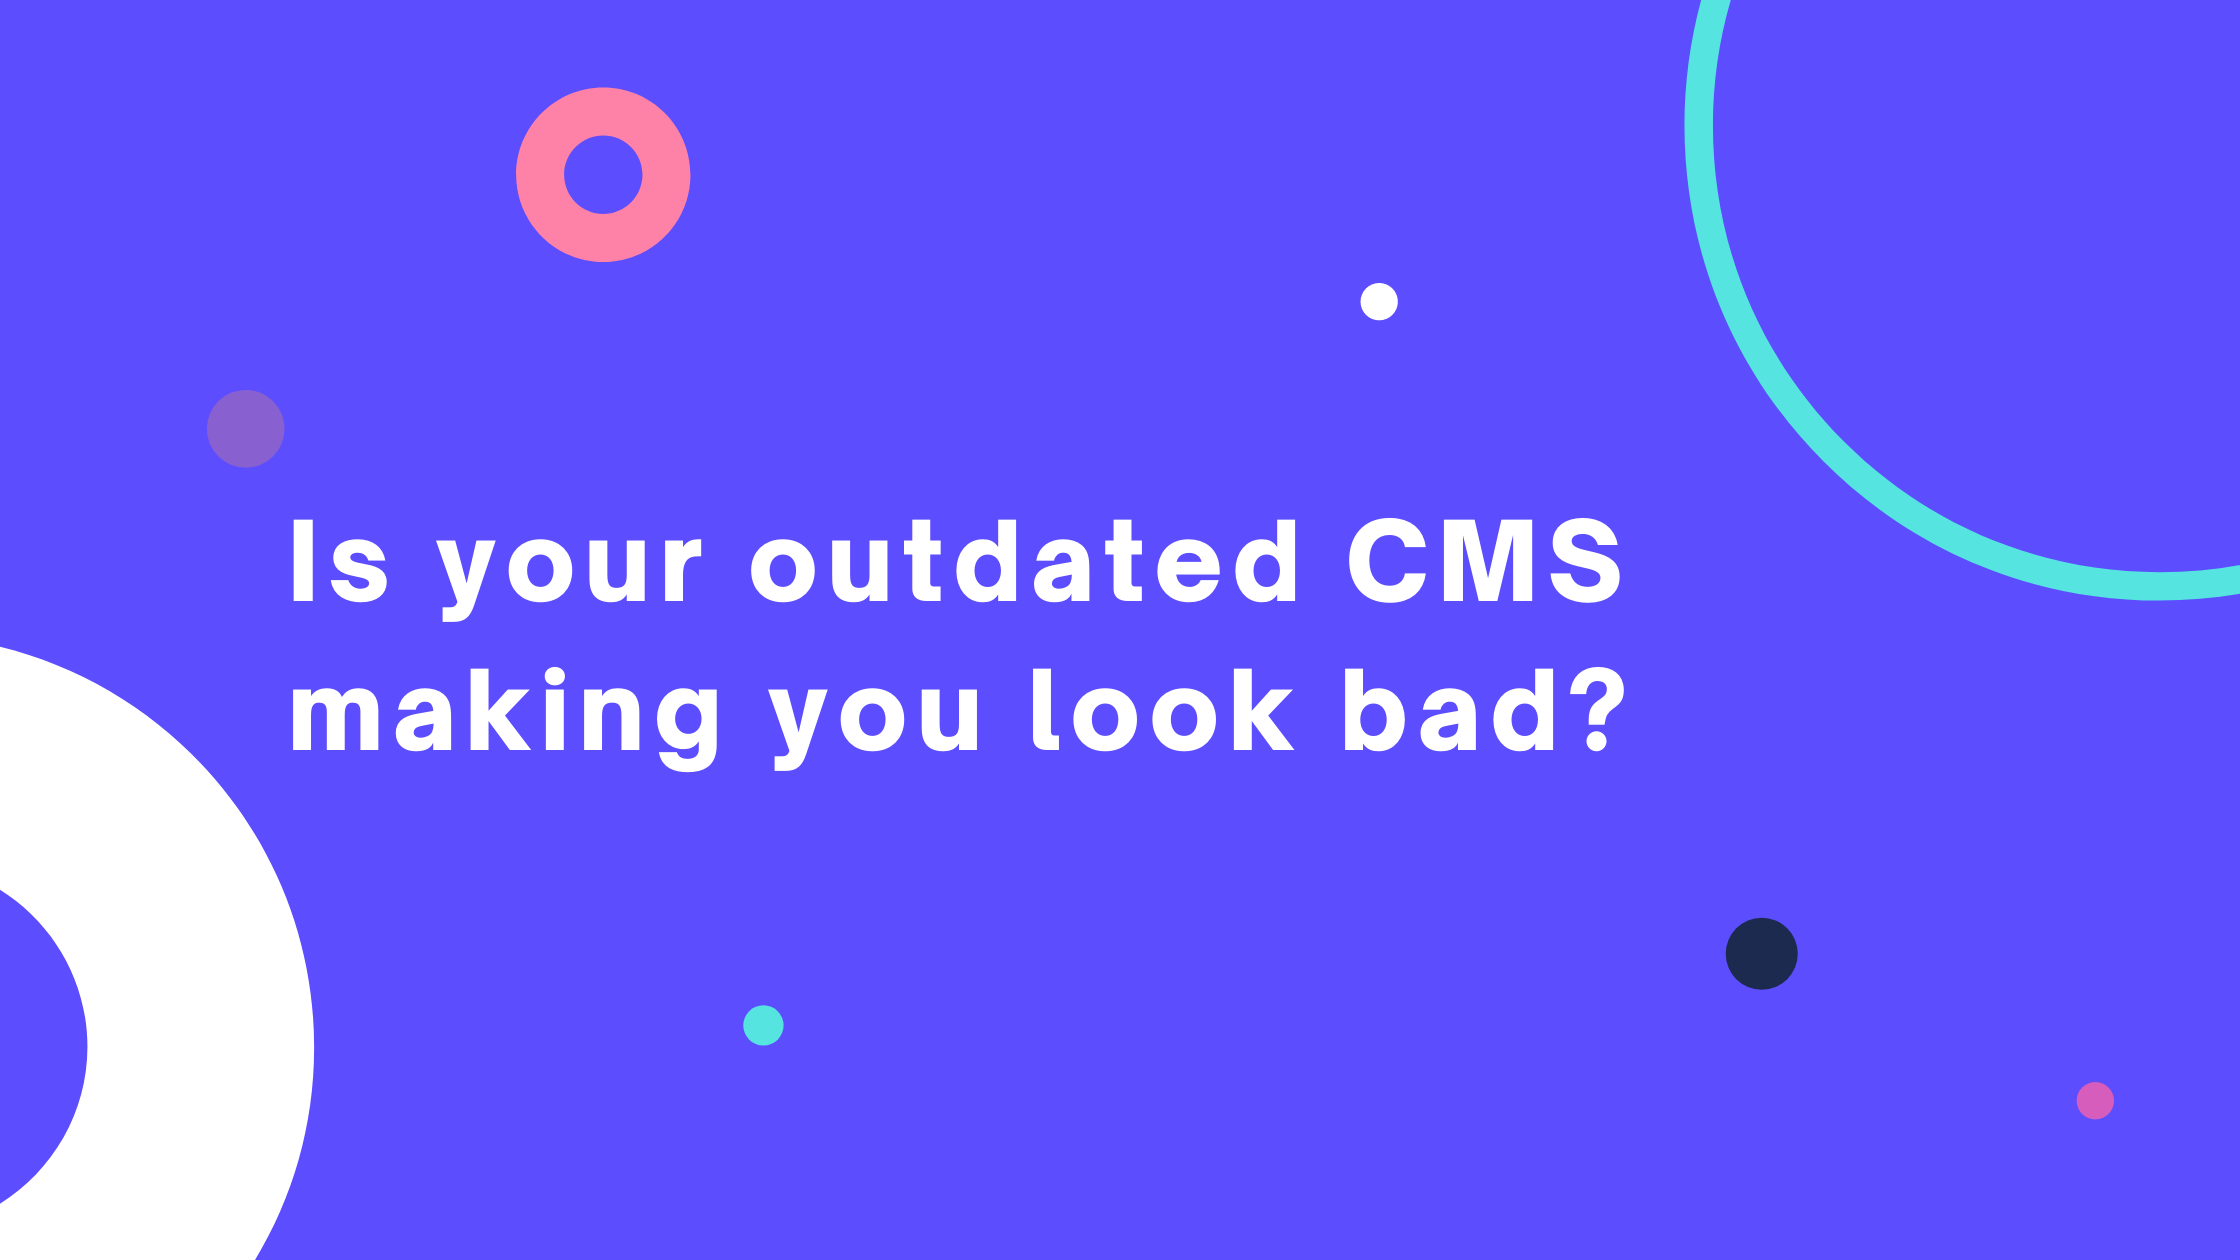 is your outdated CMS making you look bad?